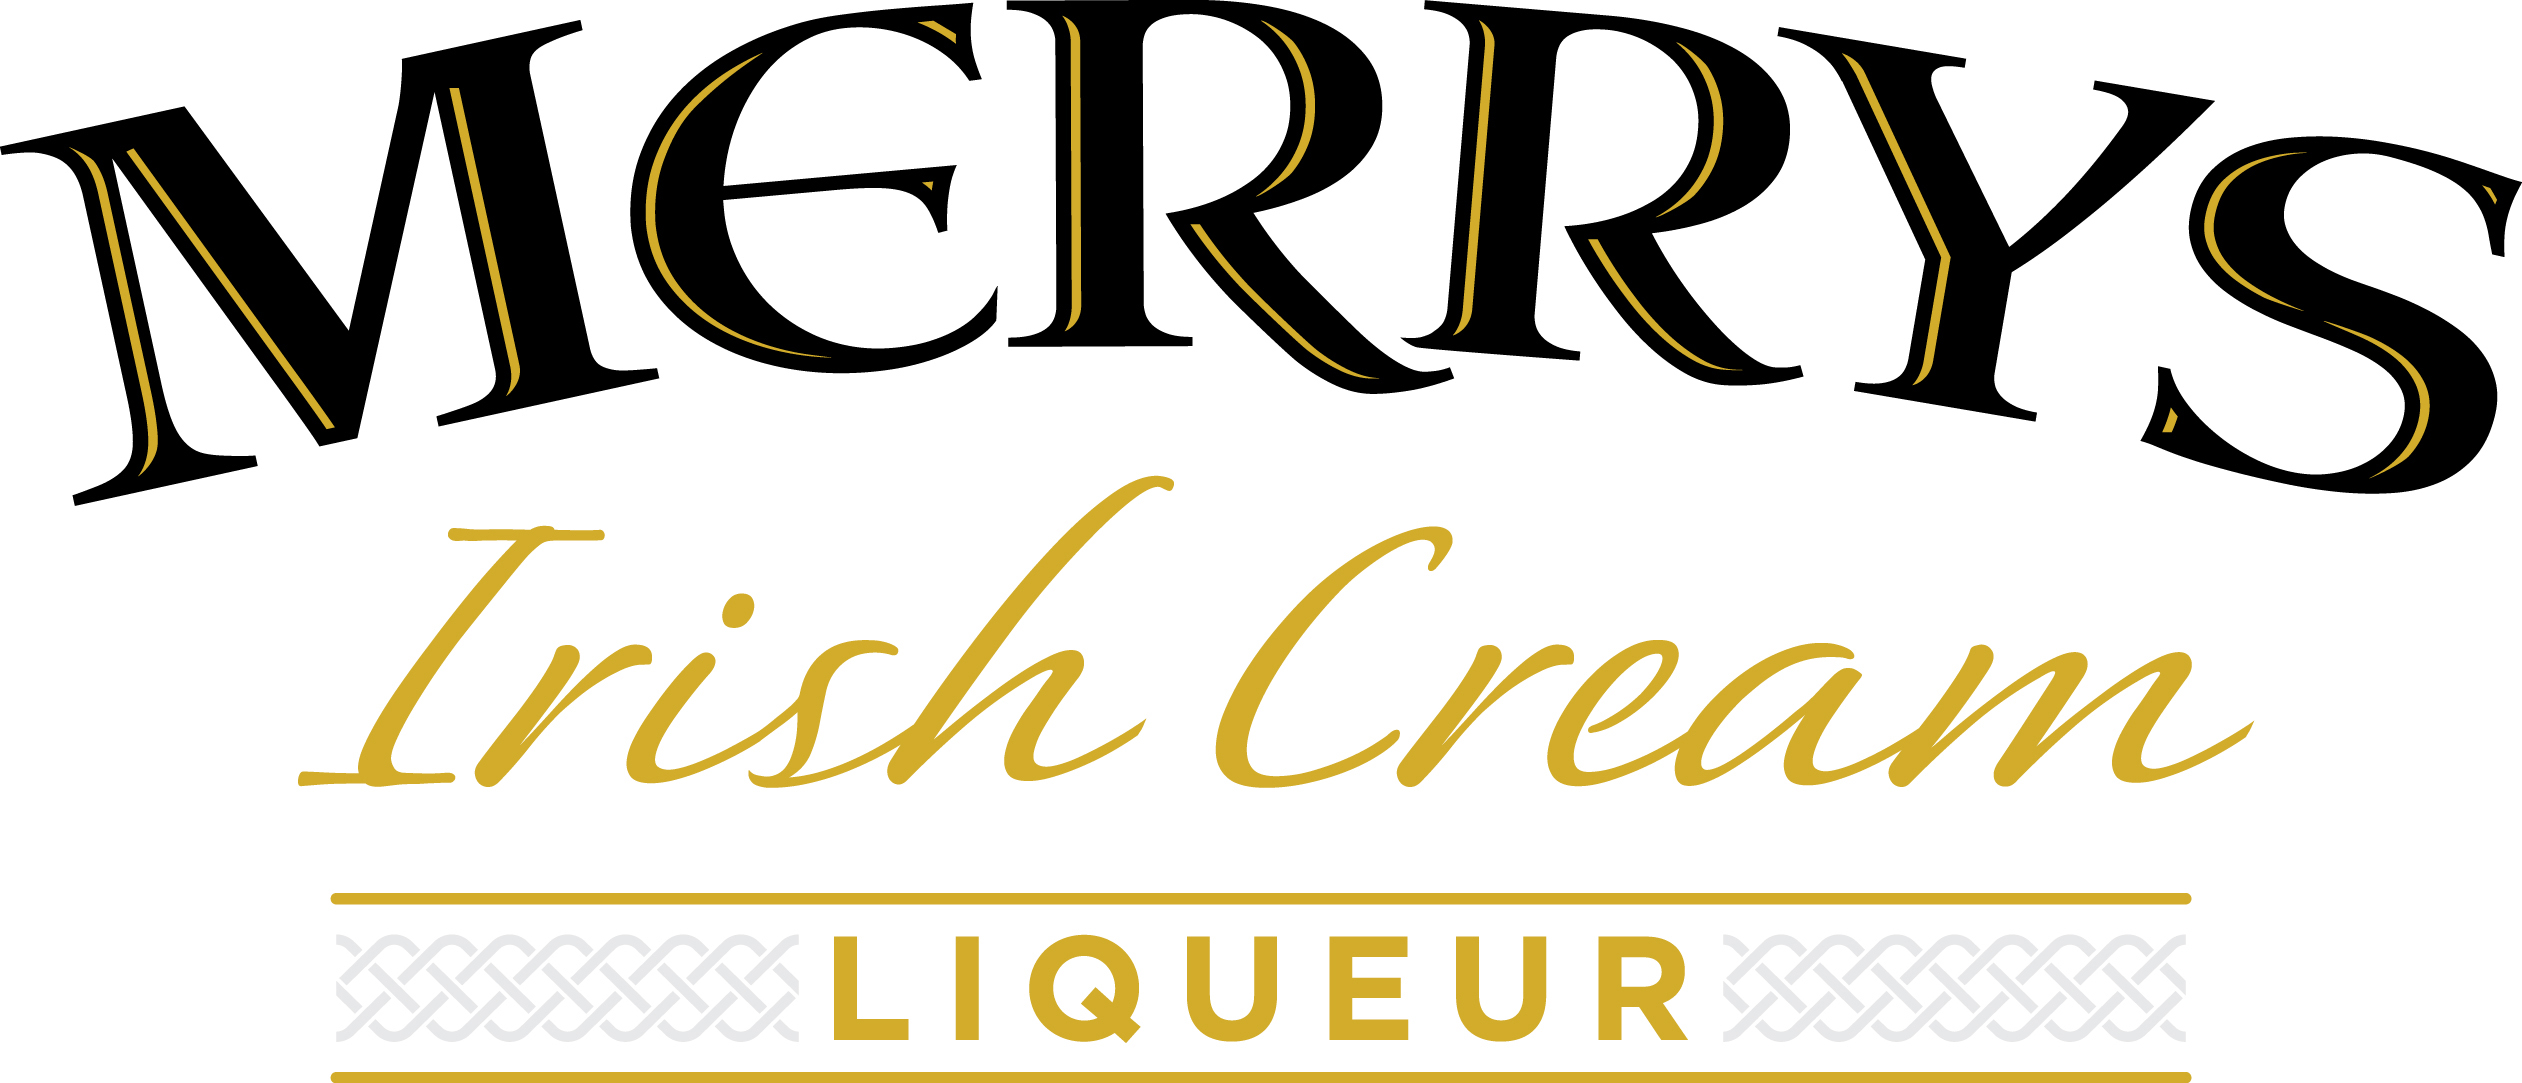 Image of Robert A Merry & Co Limited logotype